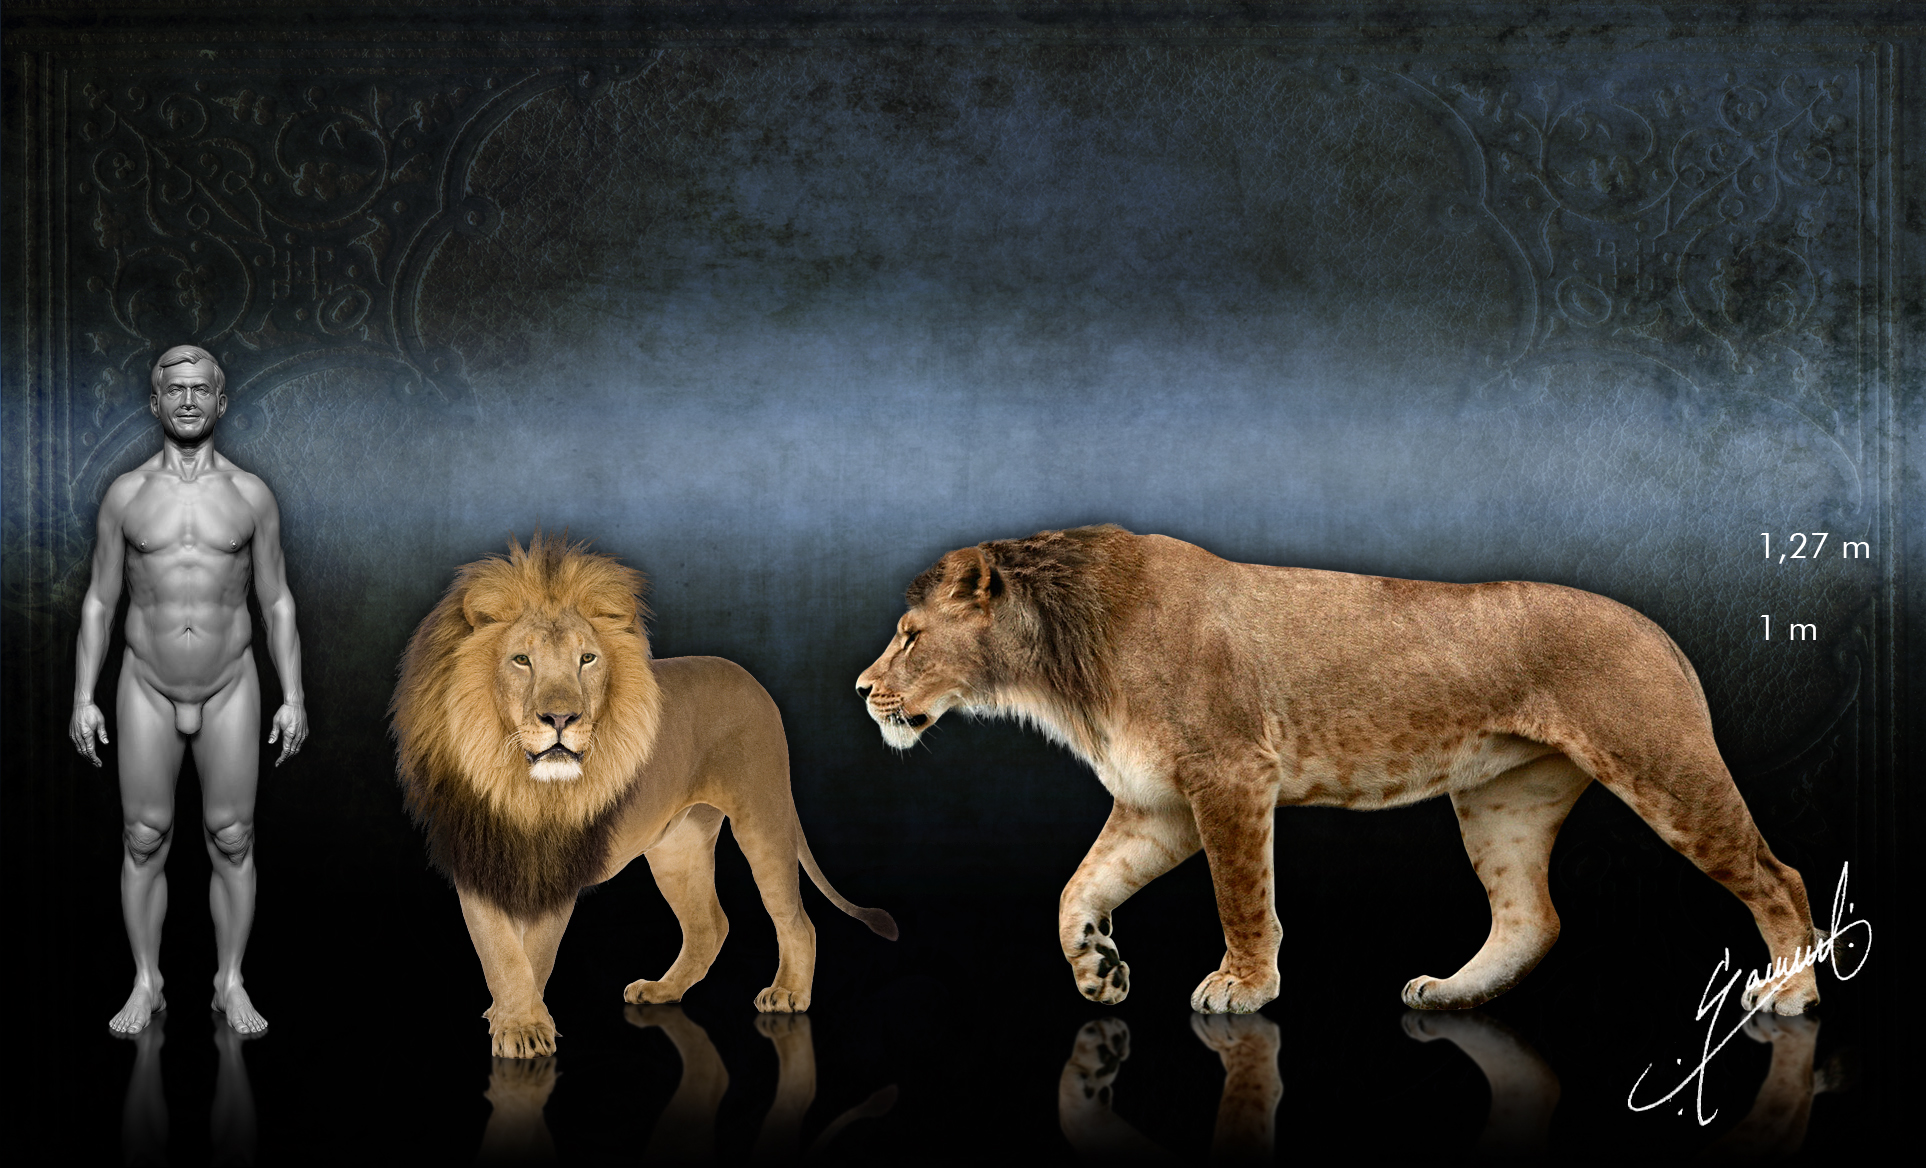 The Bigger They Are 10 Ice Age Giants  Mental Floss